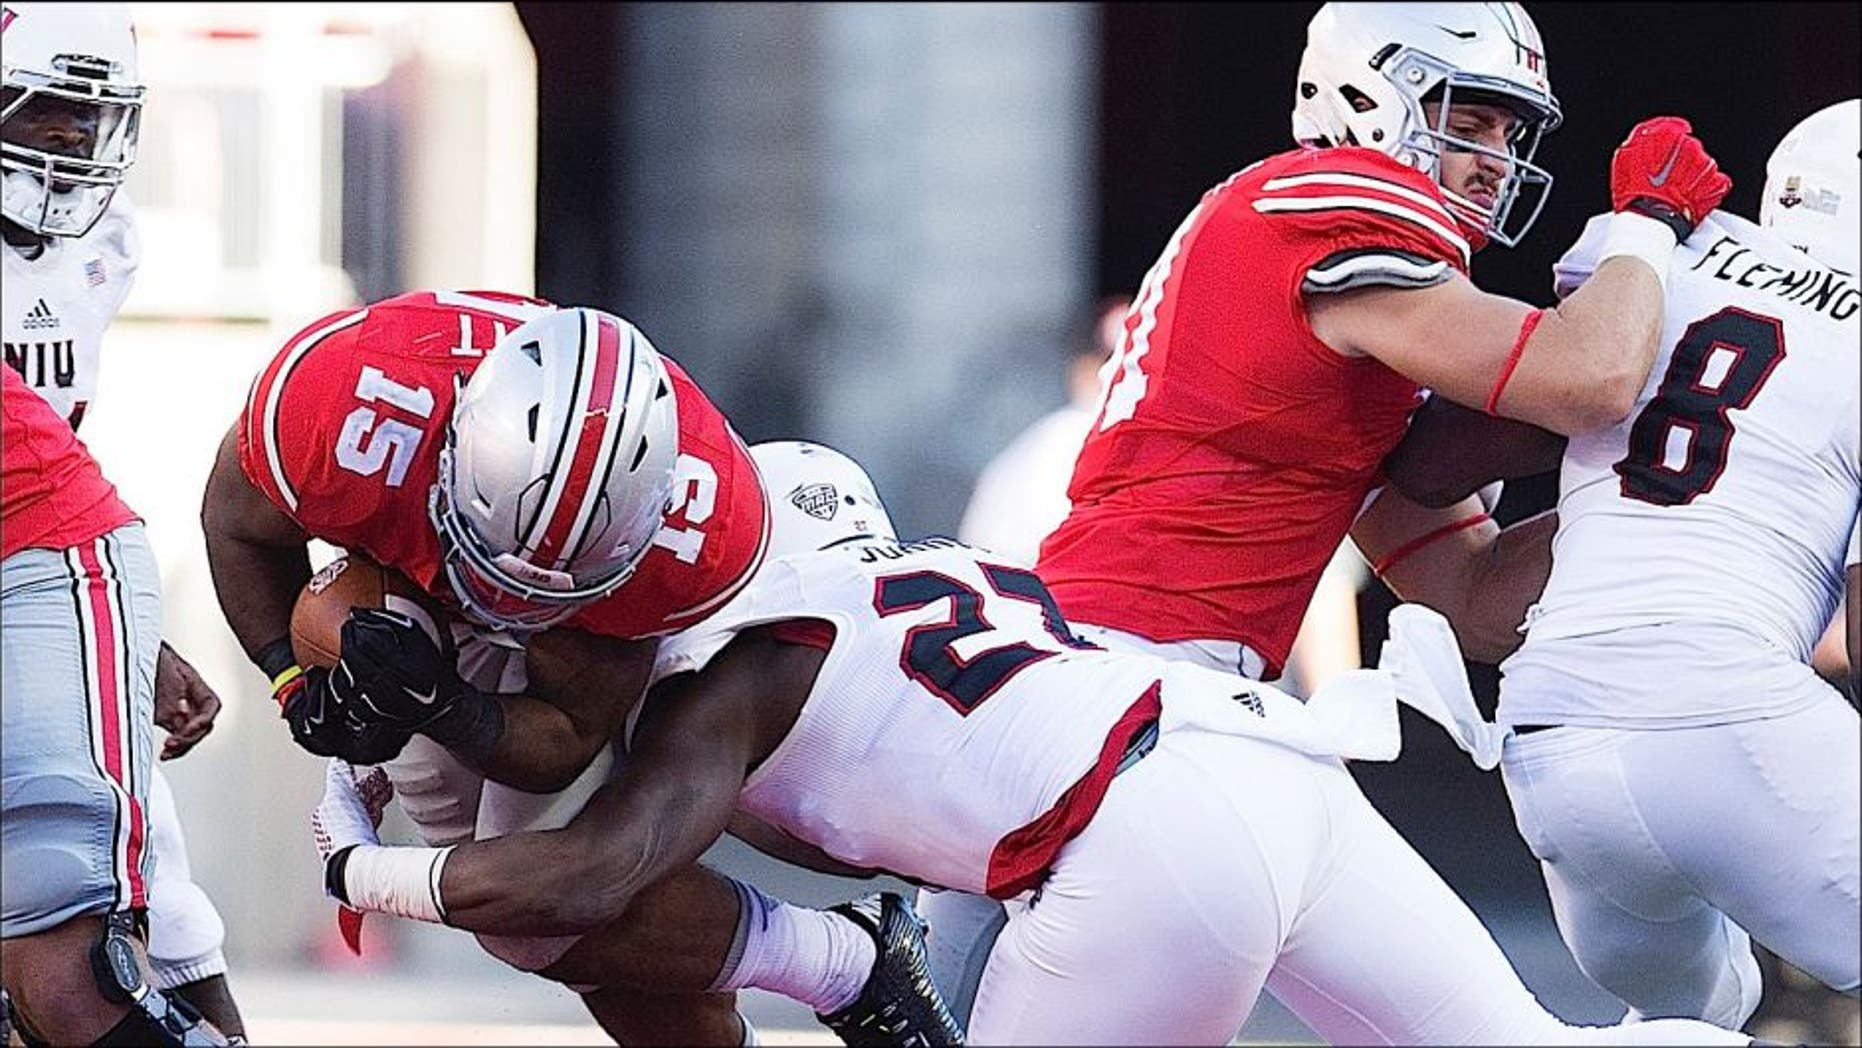 Sep 19, 2015; Columbus, OH, USA; Ohio State Buckeyes running back Ezekiel Elliott (15) is knocked off his feet by Northern Illinois Huskies safety Jawuan Johnson (27) at Ohio Stadium. Ohio State won the game 20-13. Mandatory Credit: Greg Bartram-USA TODAY Sports